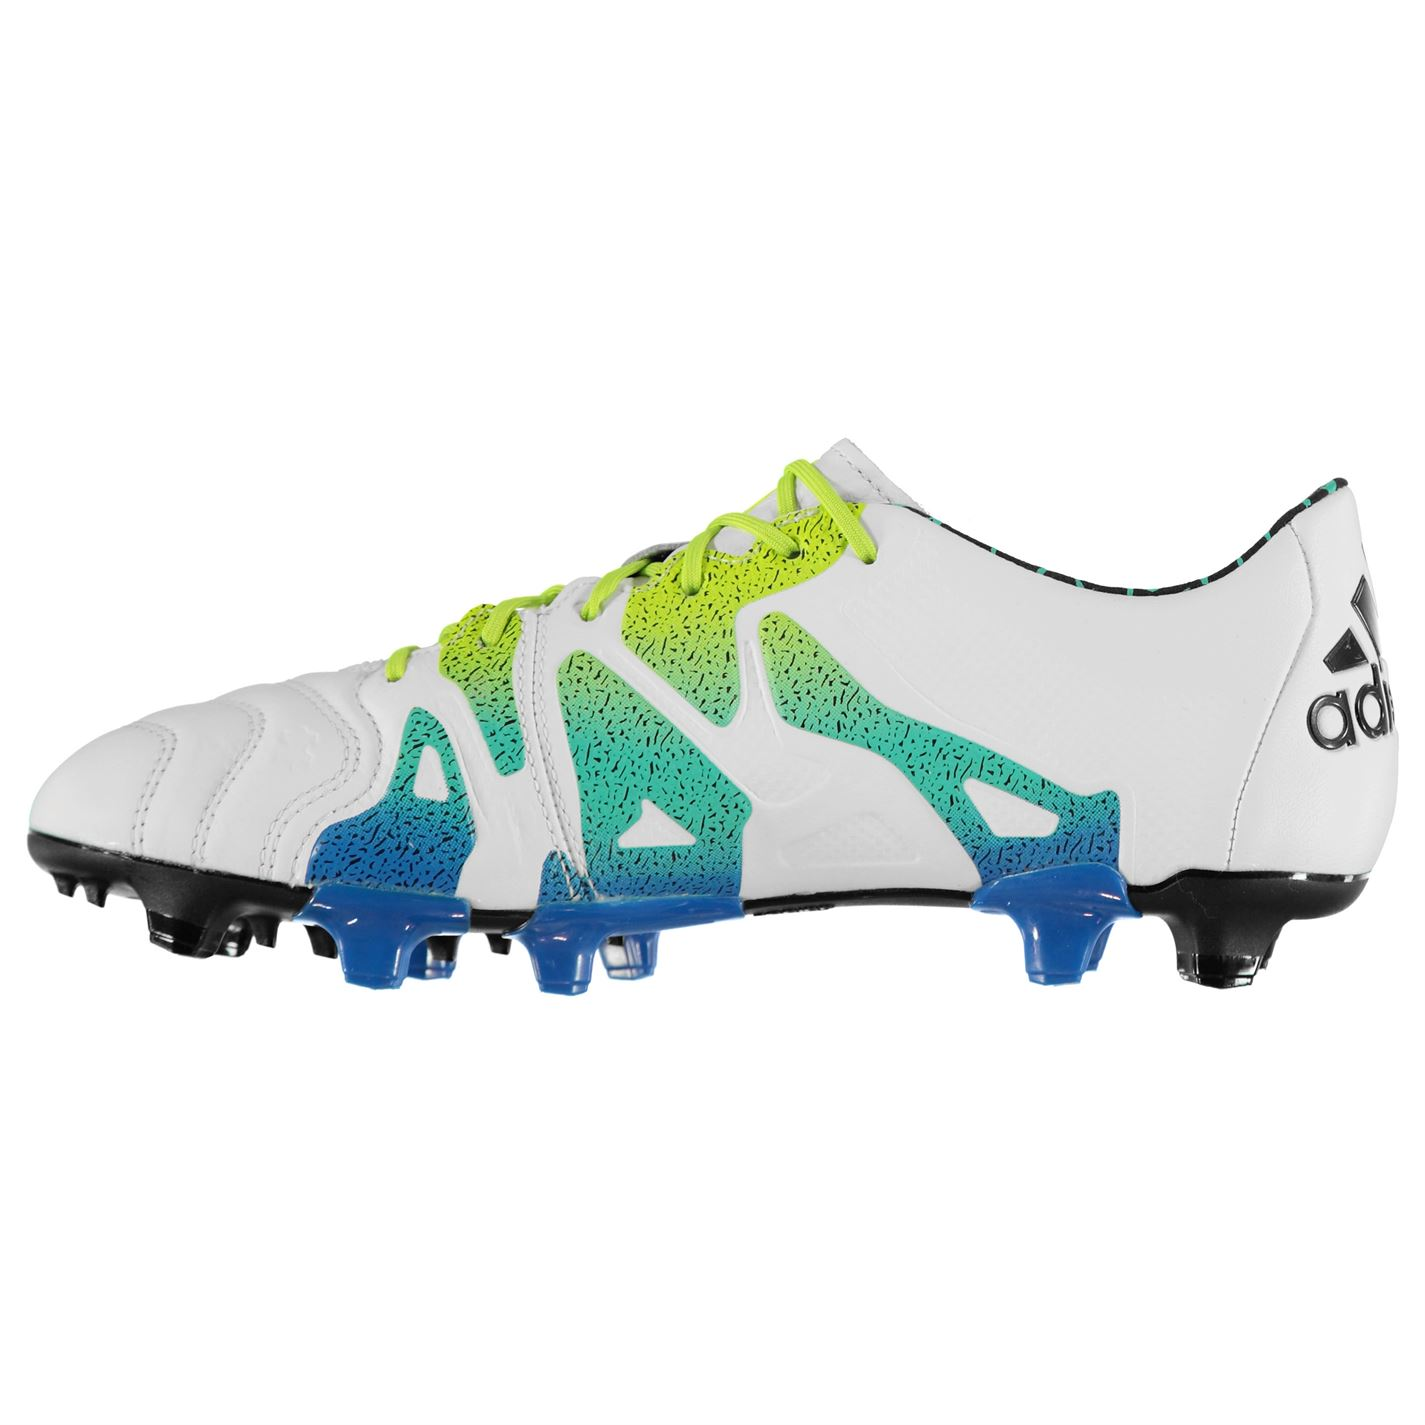 huge selection of 096a4 5f487 adidas-Mens-X-15-1-FG-AG-Leather-